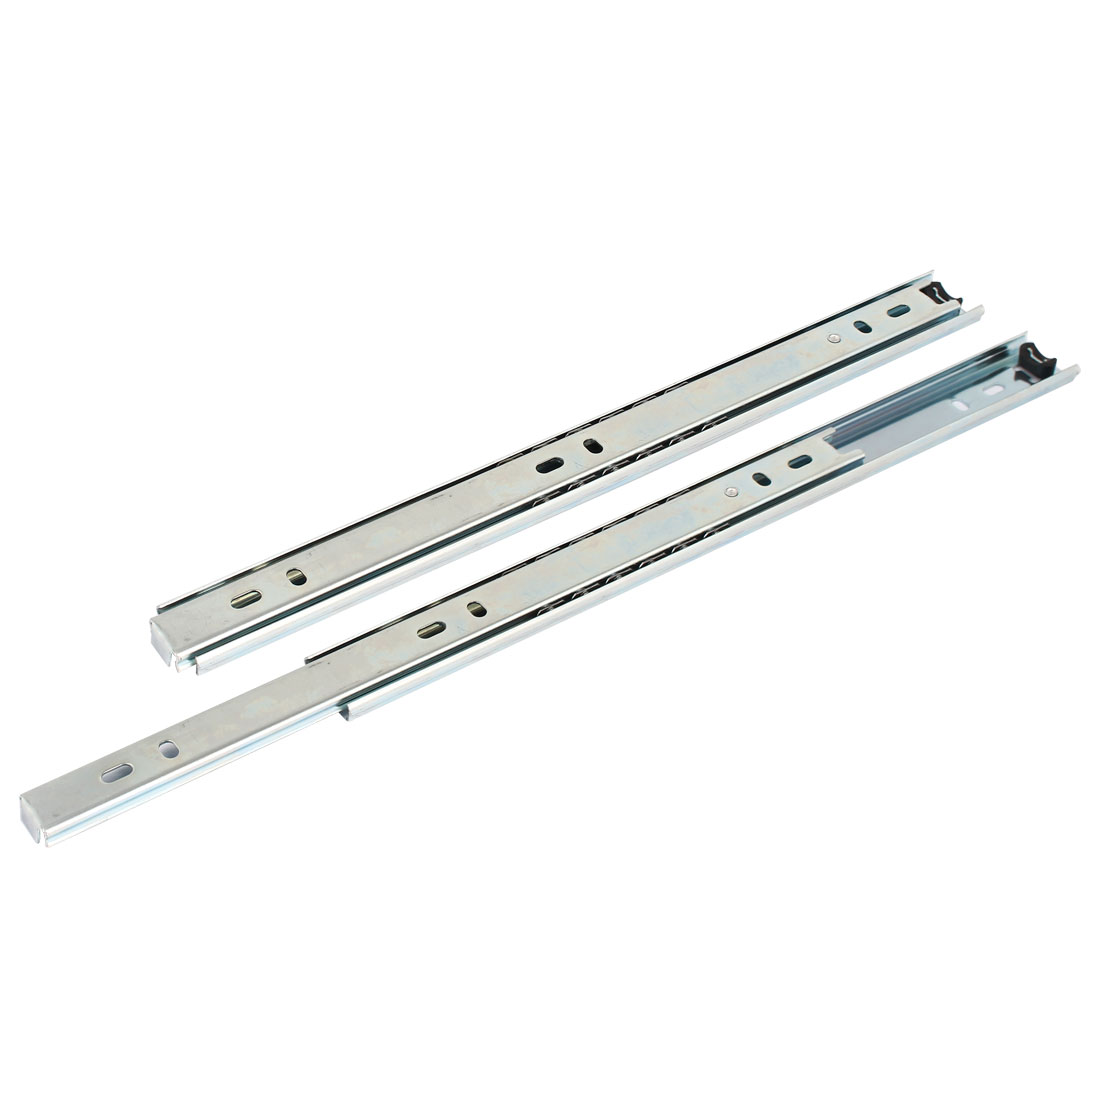 "Ball Bearing 11.4"" 290mm Length Drawer Slide Track Rail Silver Tone 2Pcs"